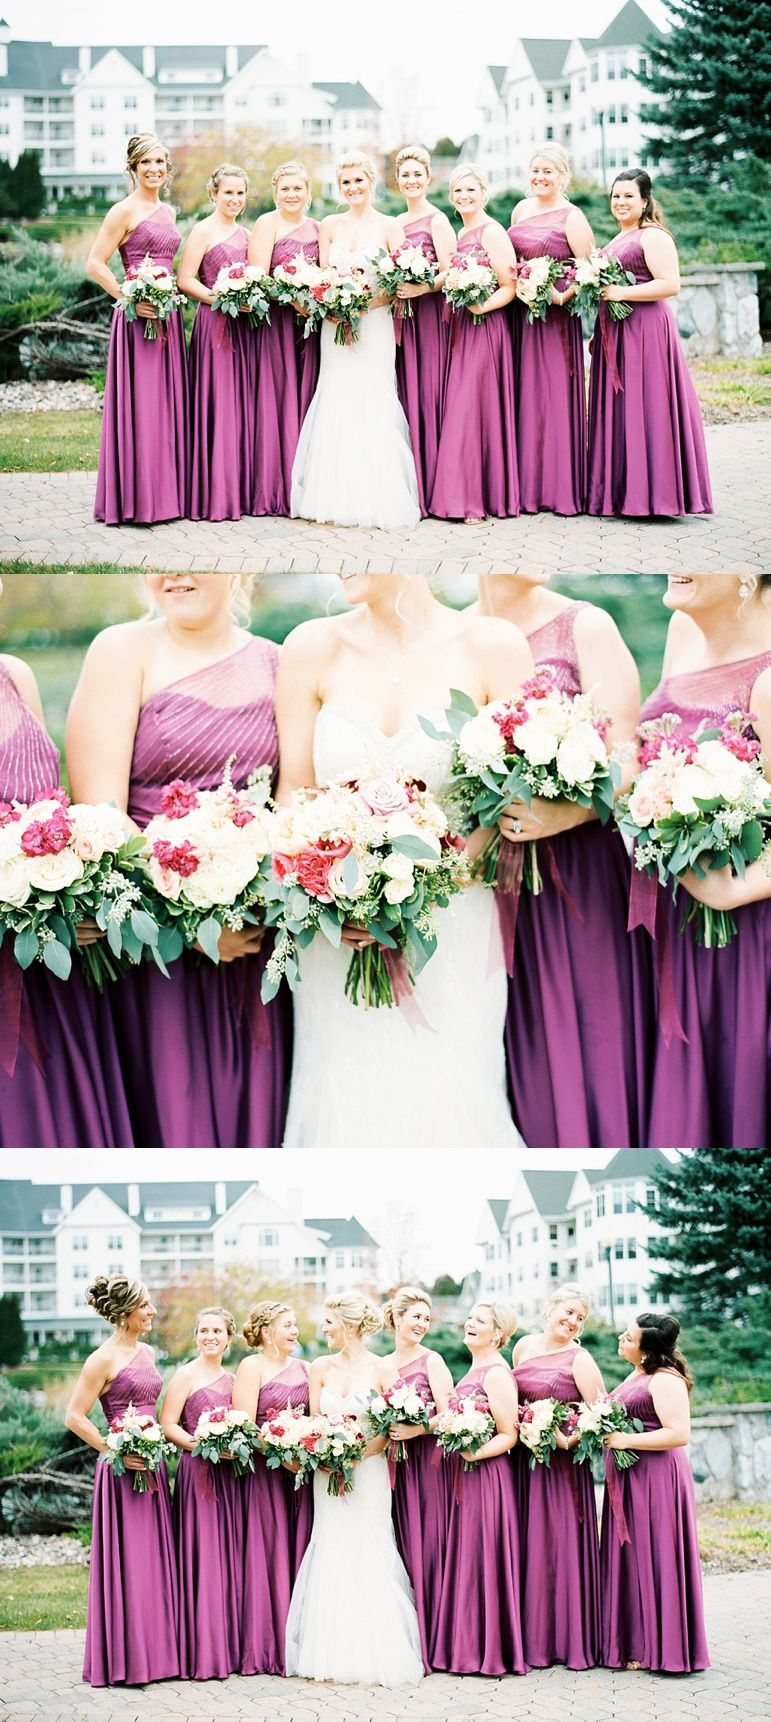 Must have bridesmaid dresses, spring florals, purple bridesmaids dress, Wisconsin wedding